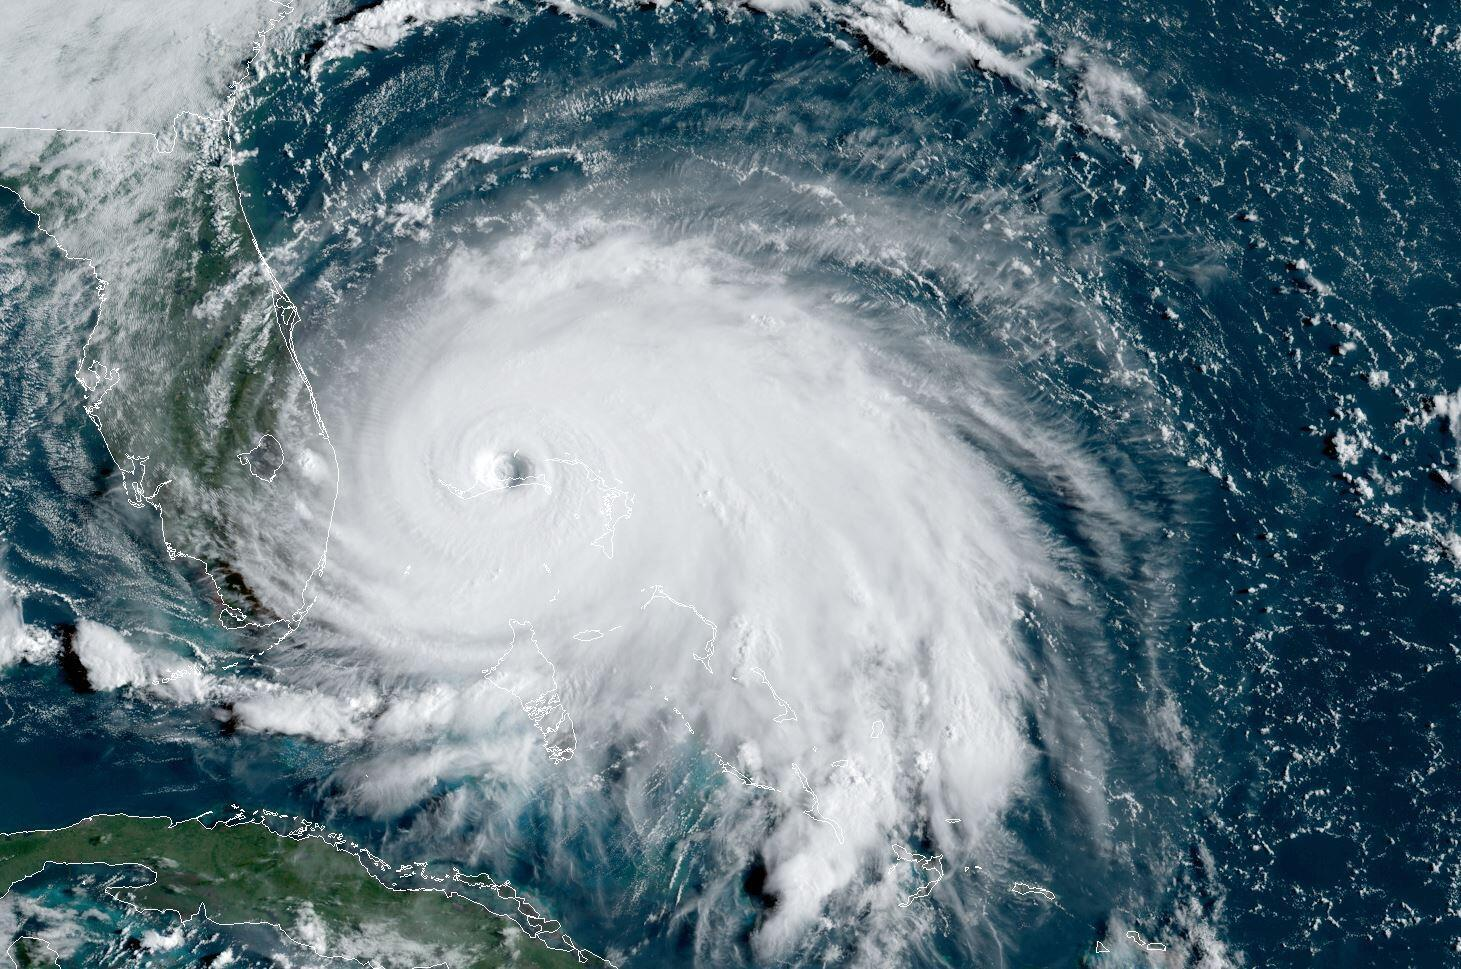 A satellite image from September 2019 of Tropical Storm Dorian. US forecasters predict an 'above normal' 2020 Atlantic hurricane season